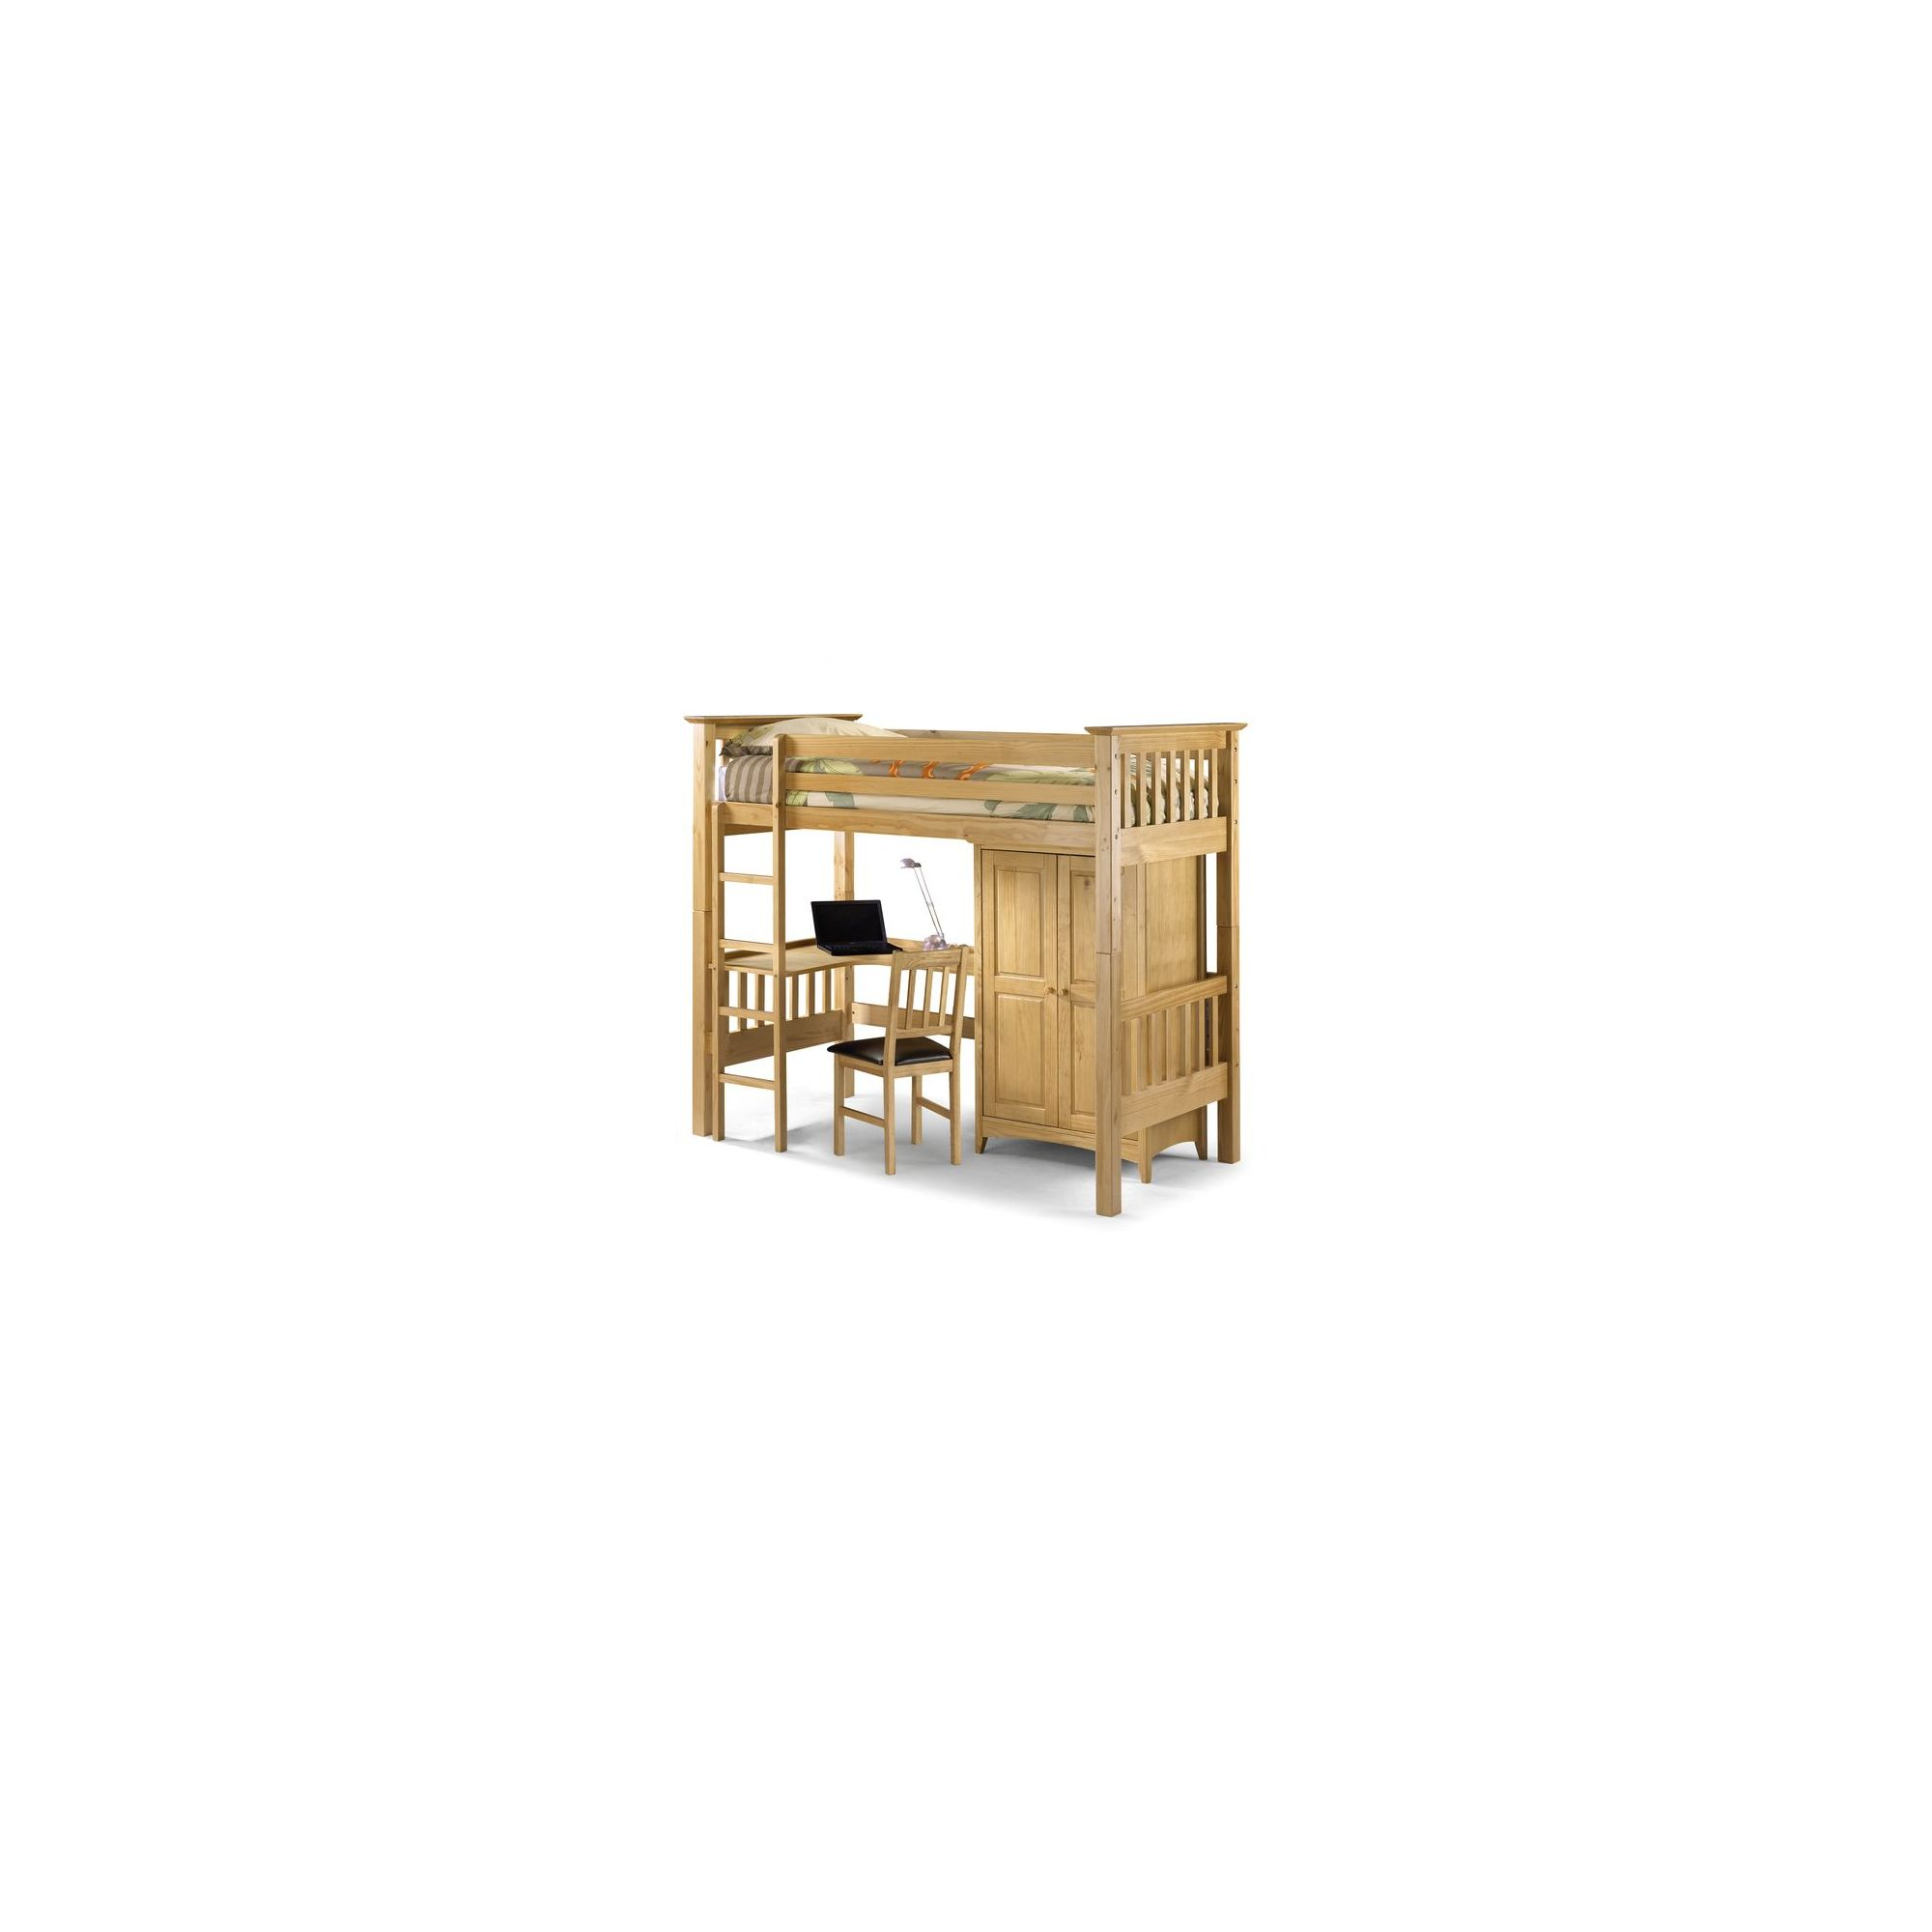 Julian Bowen Bedsitter Bunk Bed at Tesco Direct